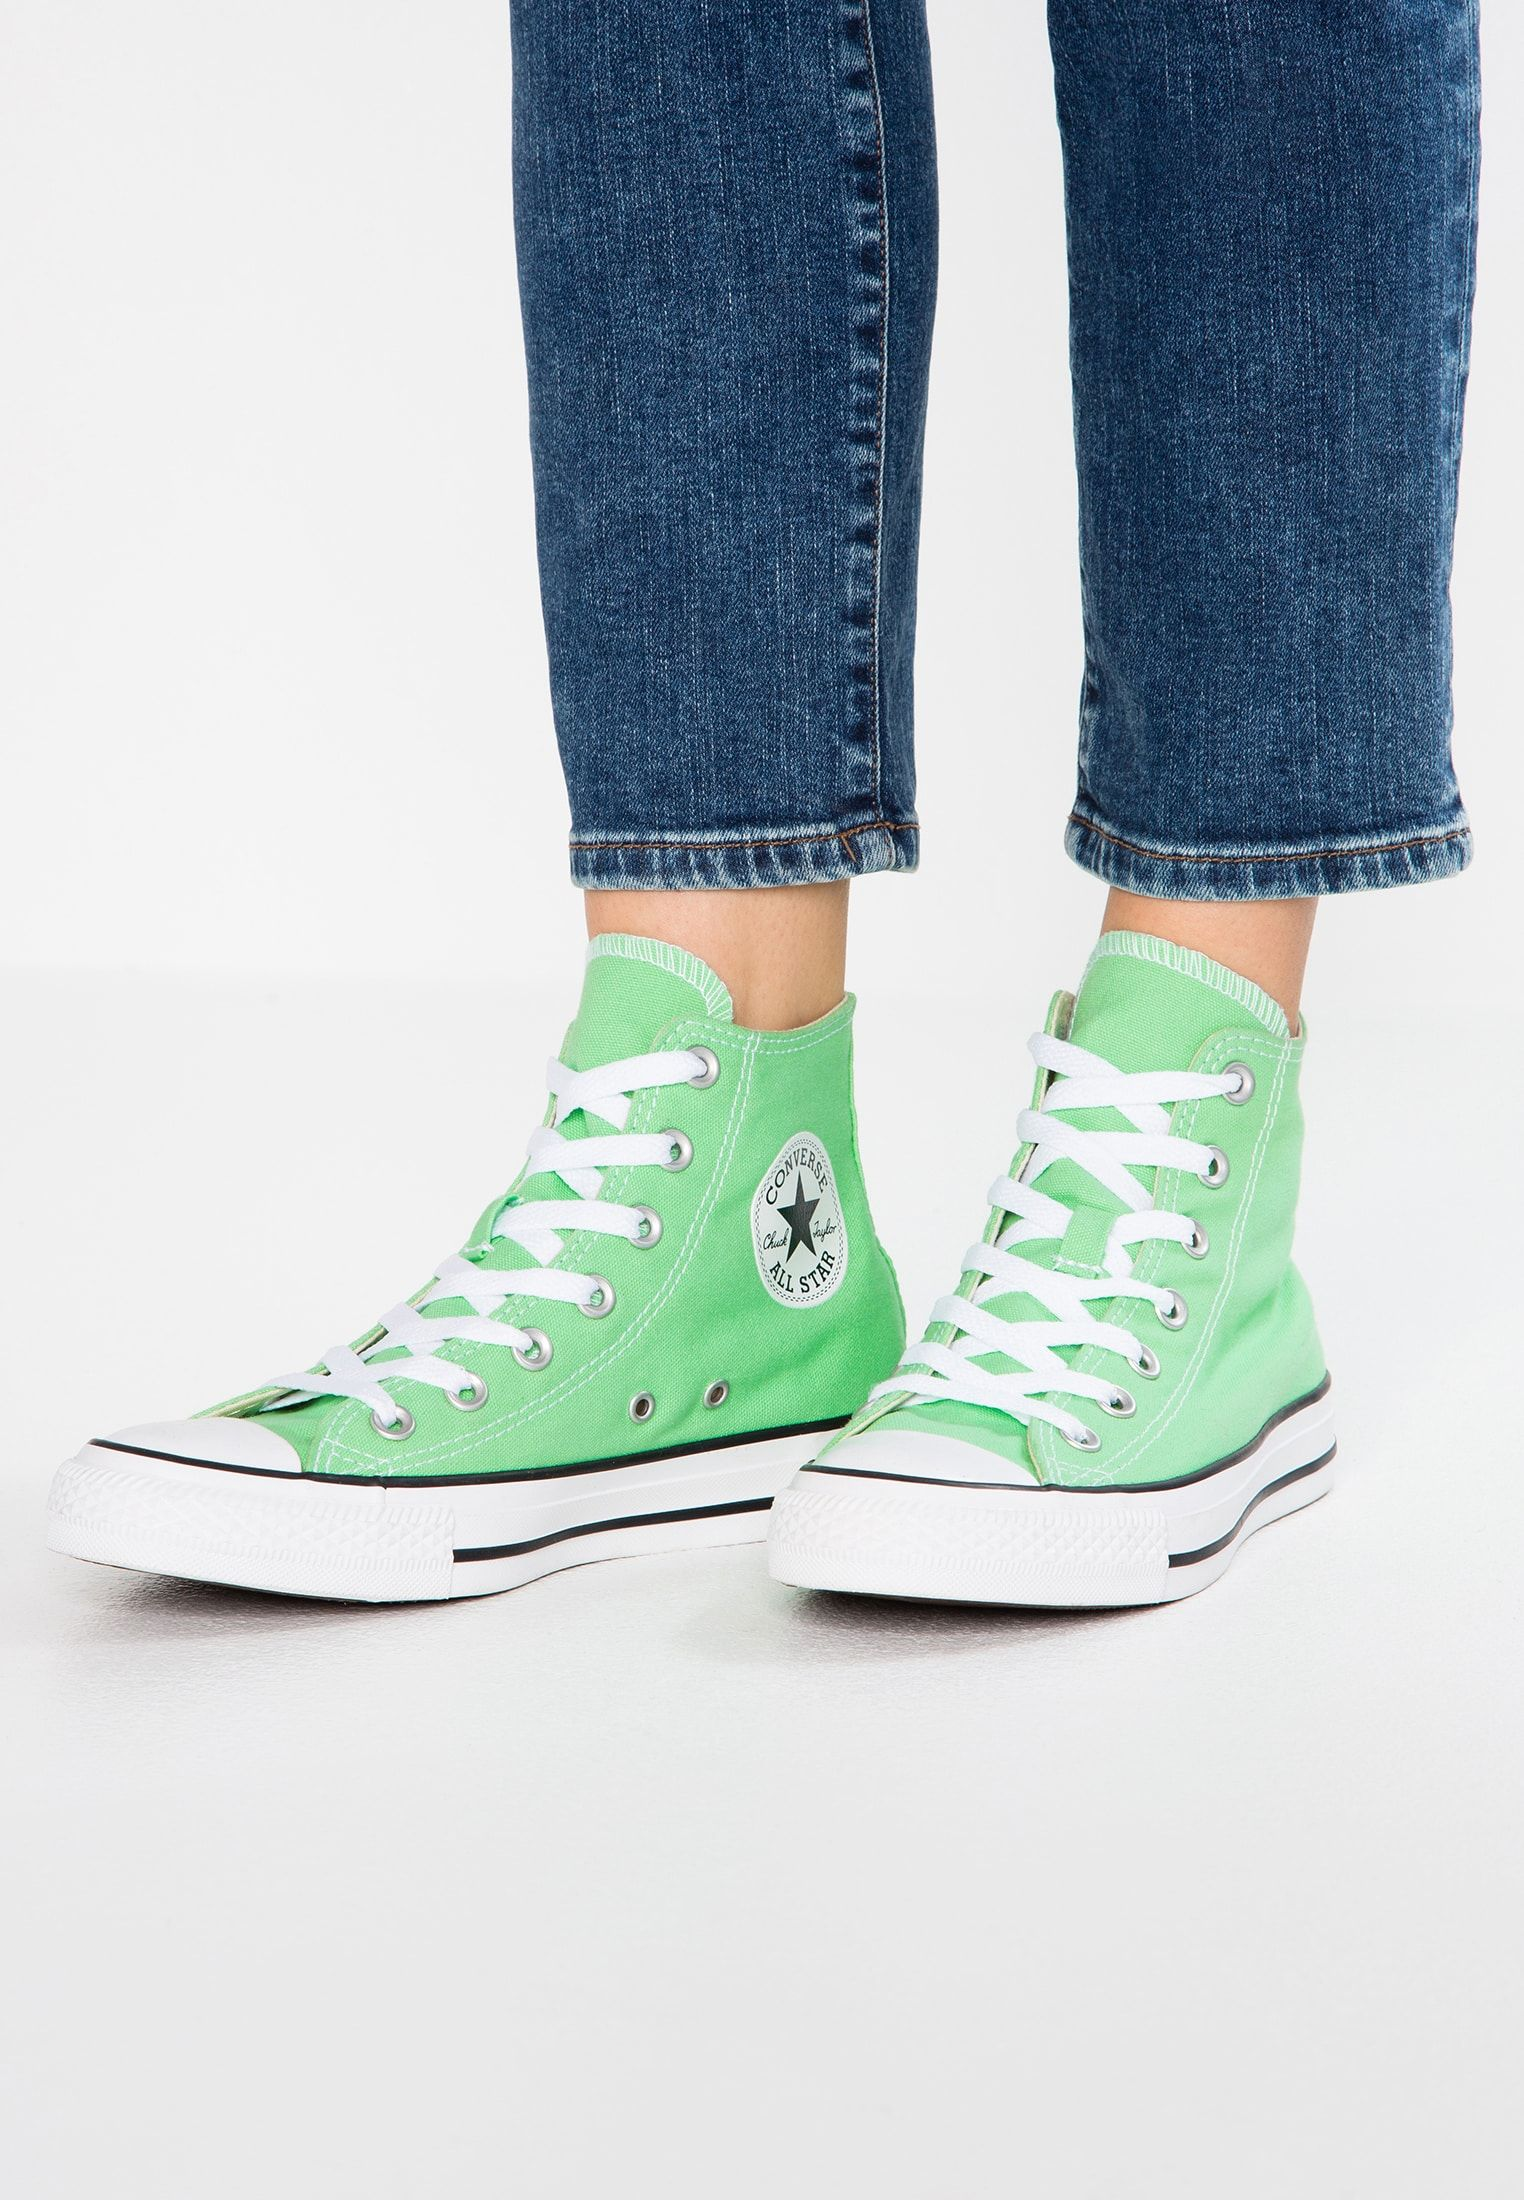 CHUCK TAYLOR Sneaker high light aphid green @